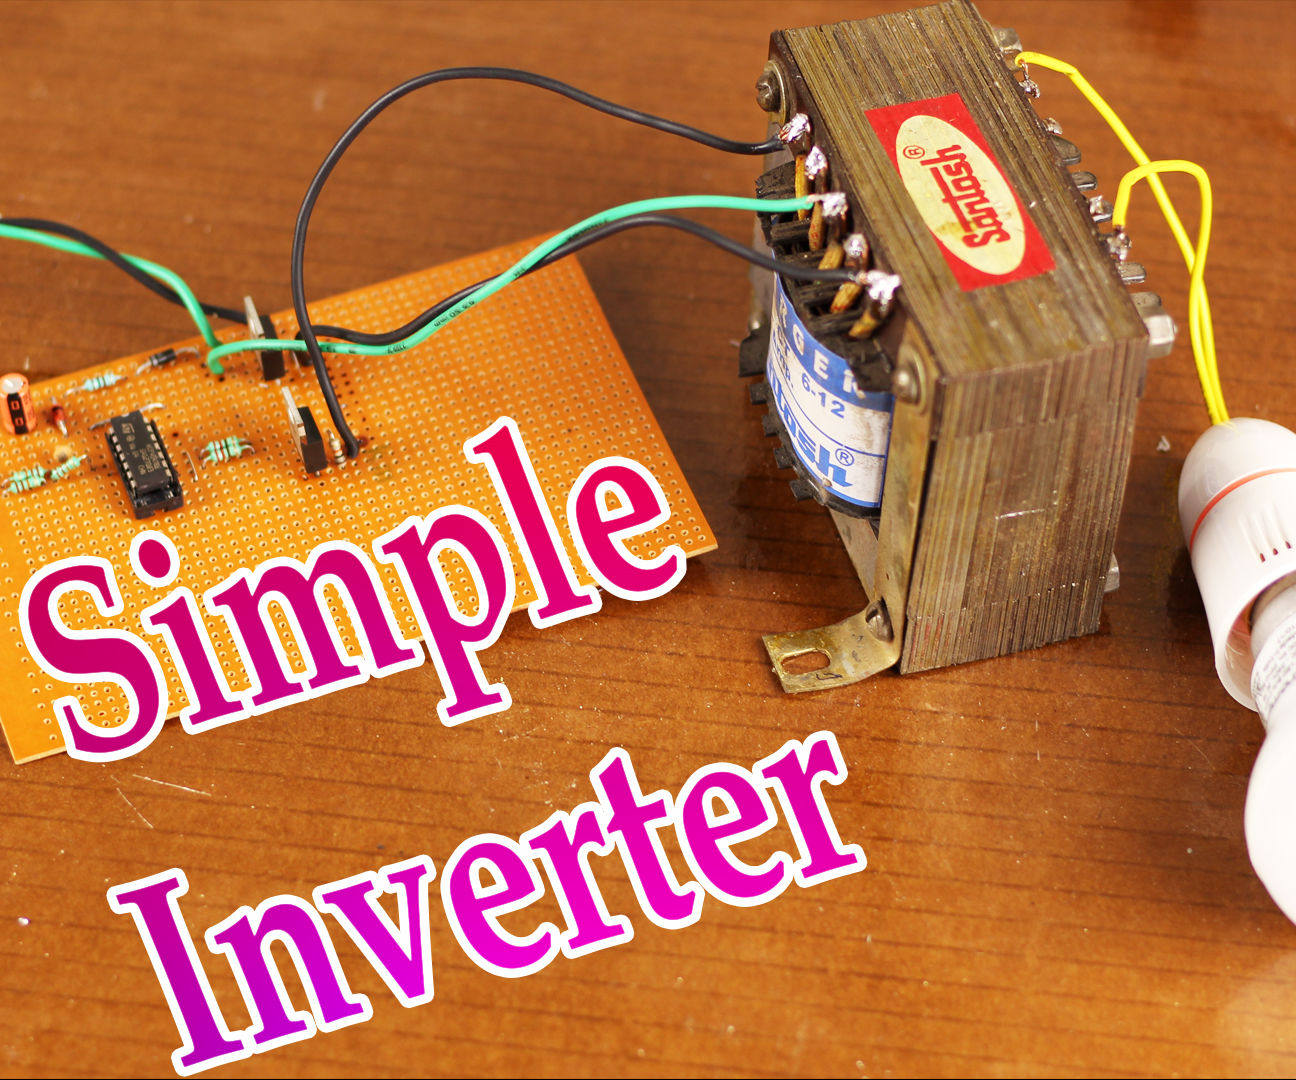 Inverter 12v To 220v 100w By Transistor Circuit Wiring Diagrams